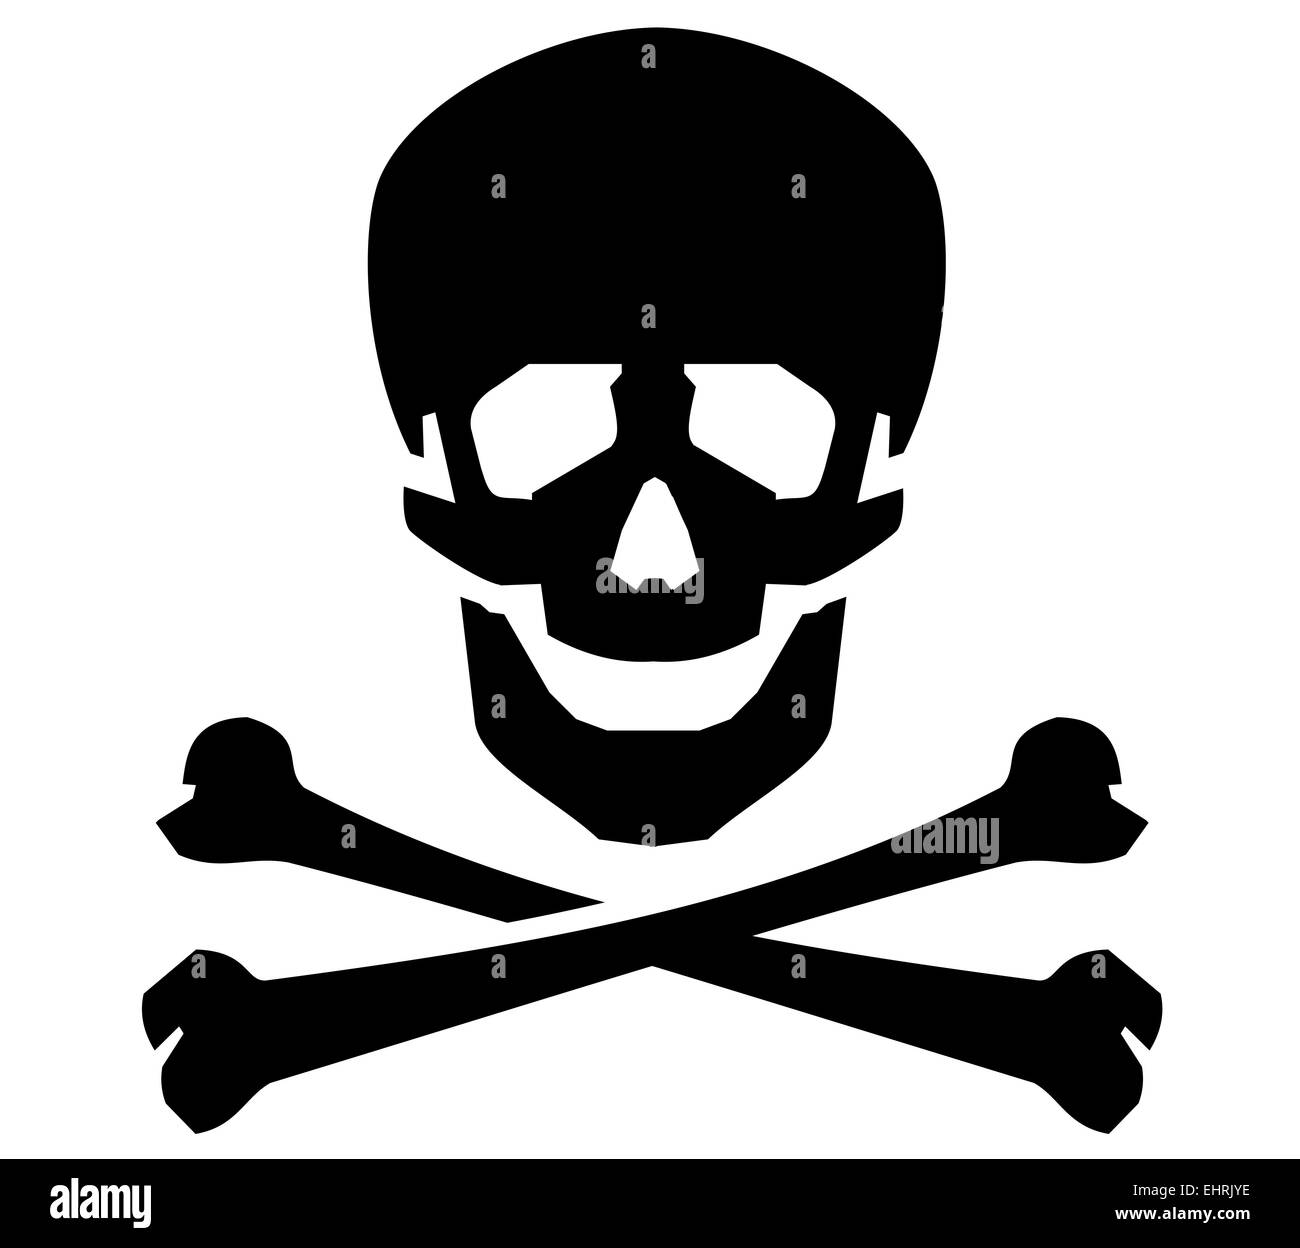 Jolly Roger vector logo design template. human skull or radiation icon. - Stock Image